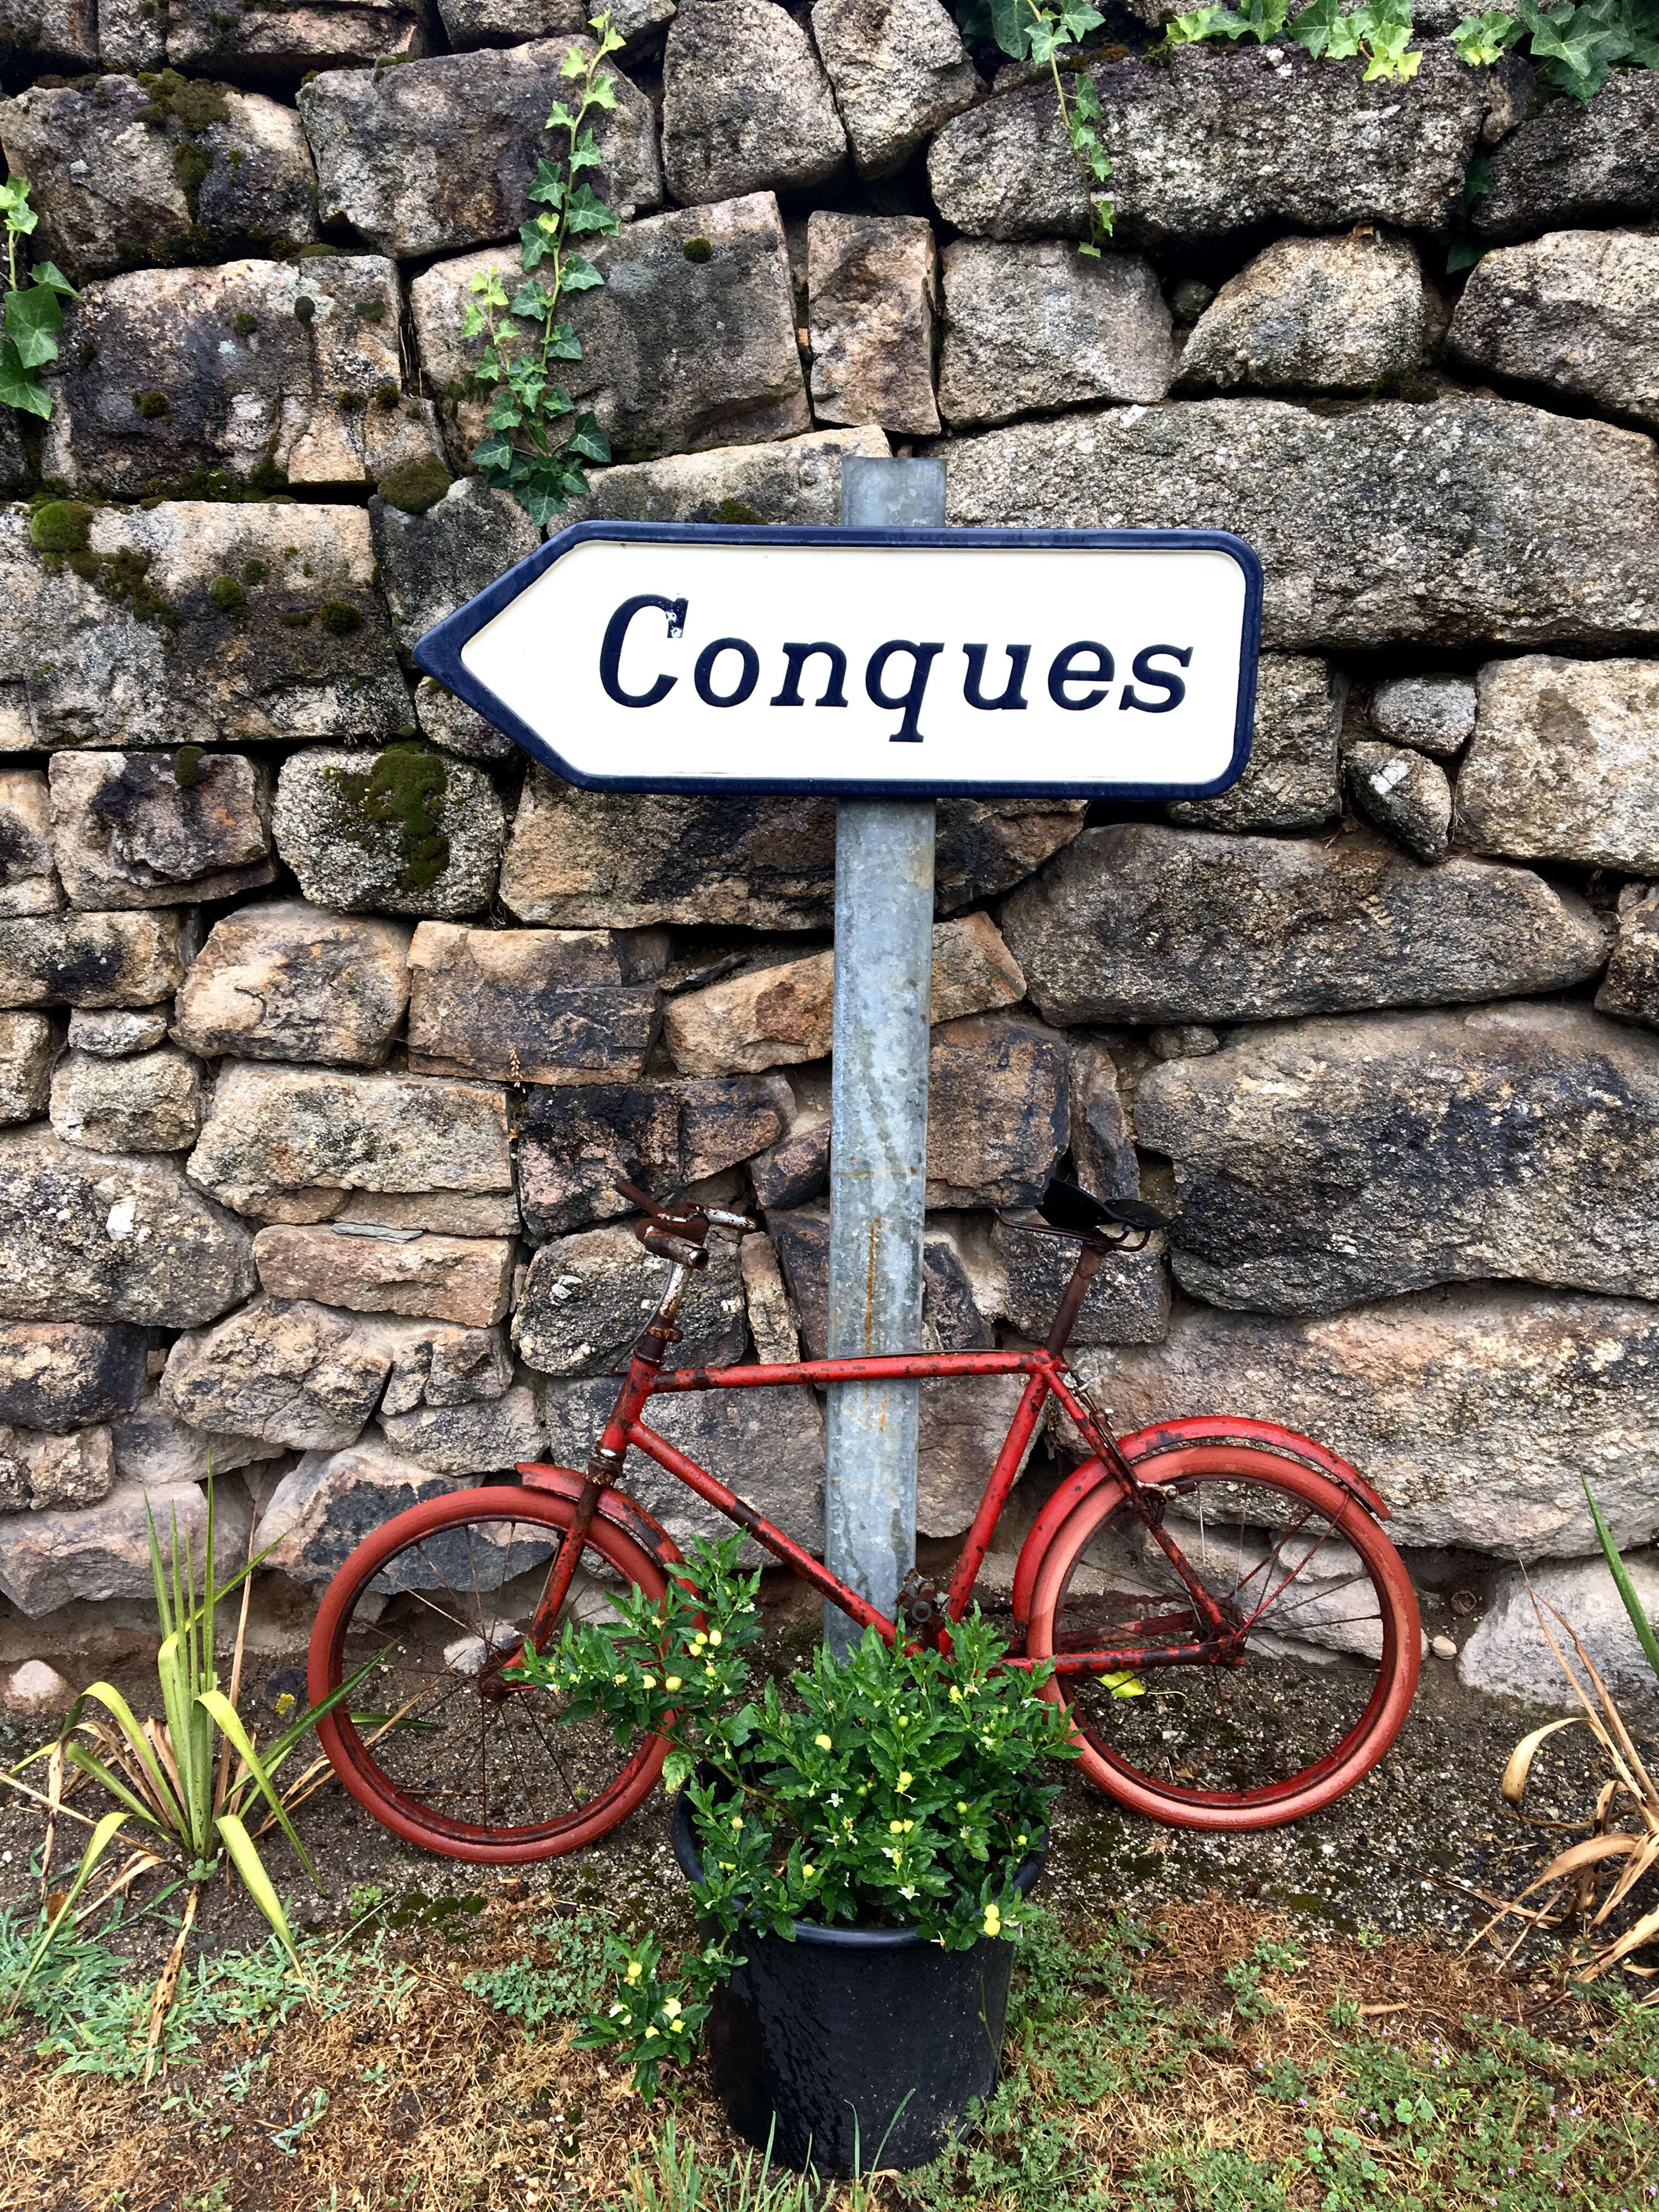 Following the arrows to Conques, Chemin du Puy